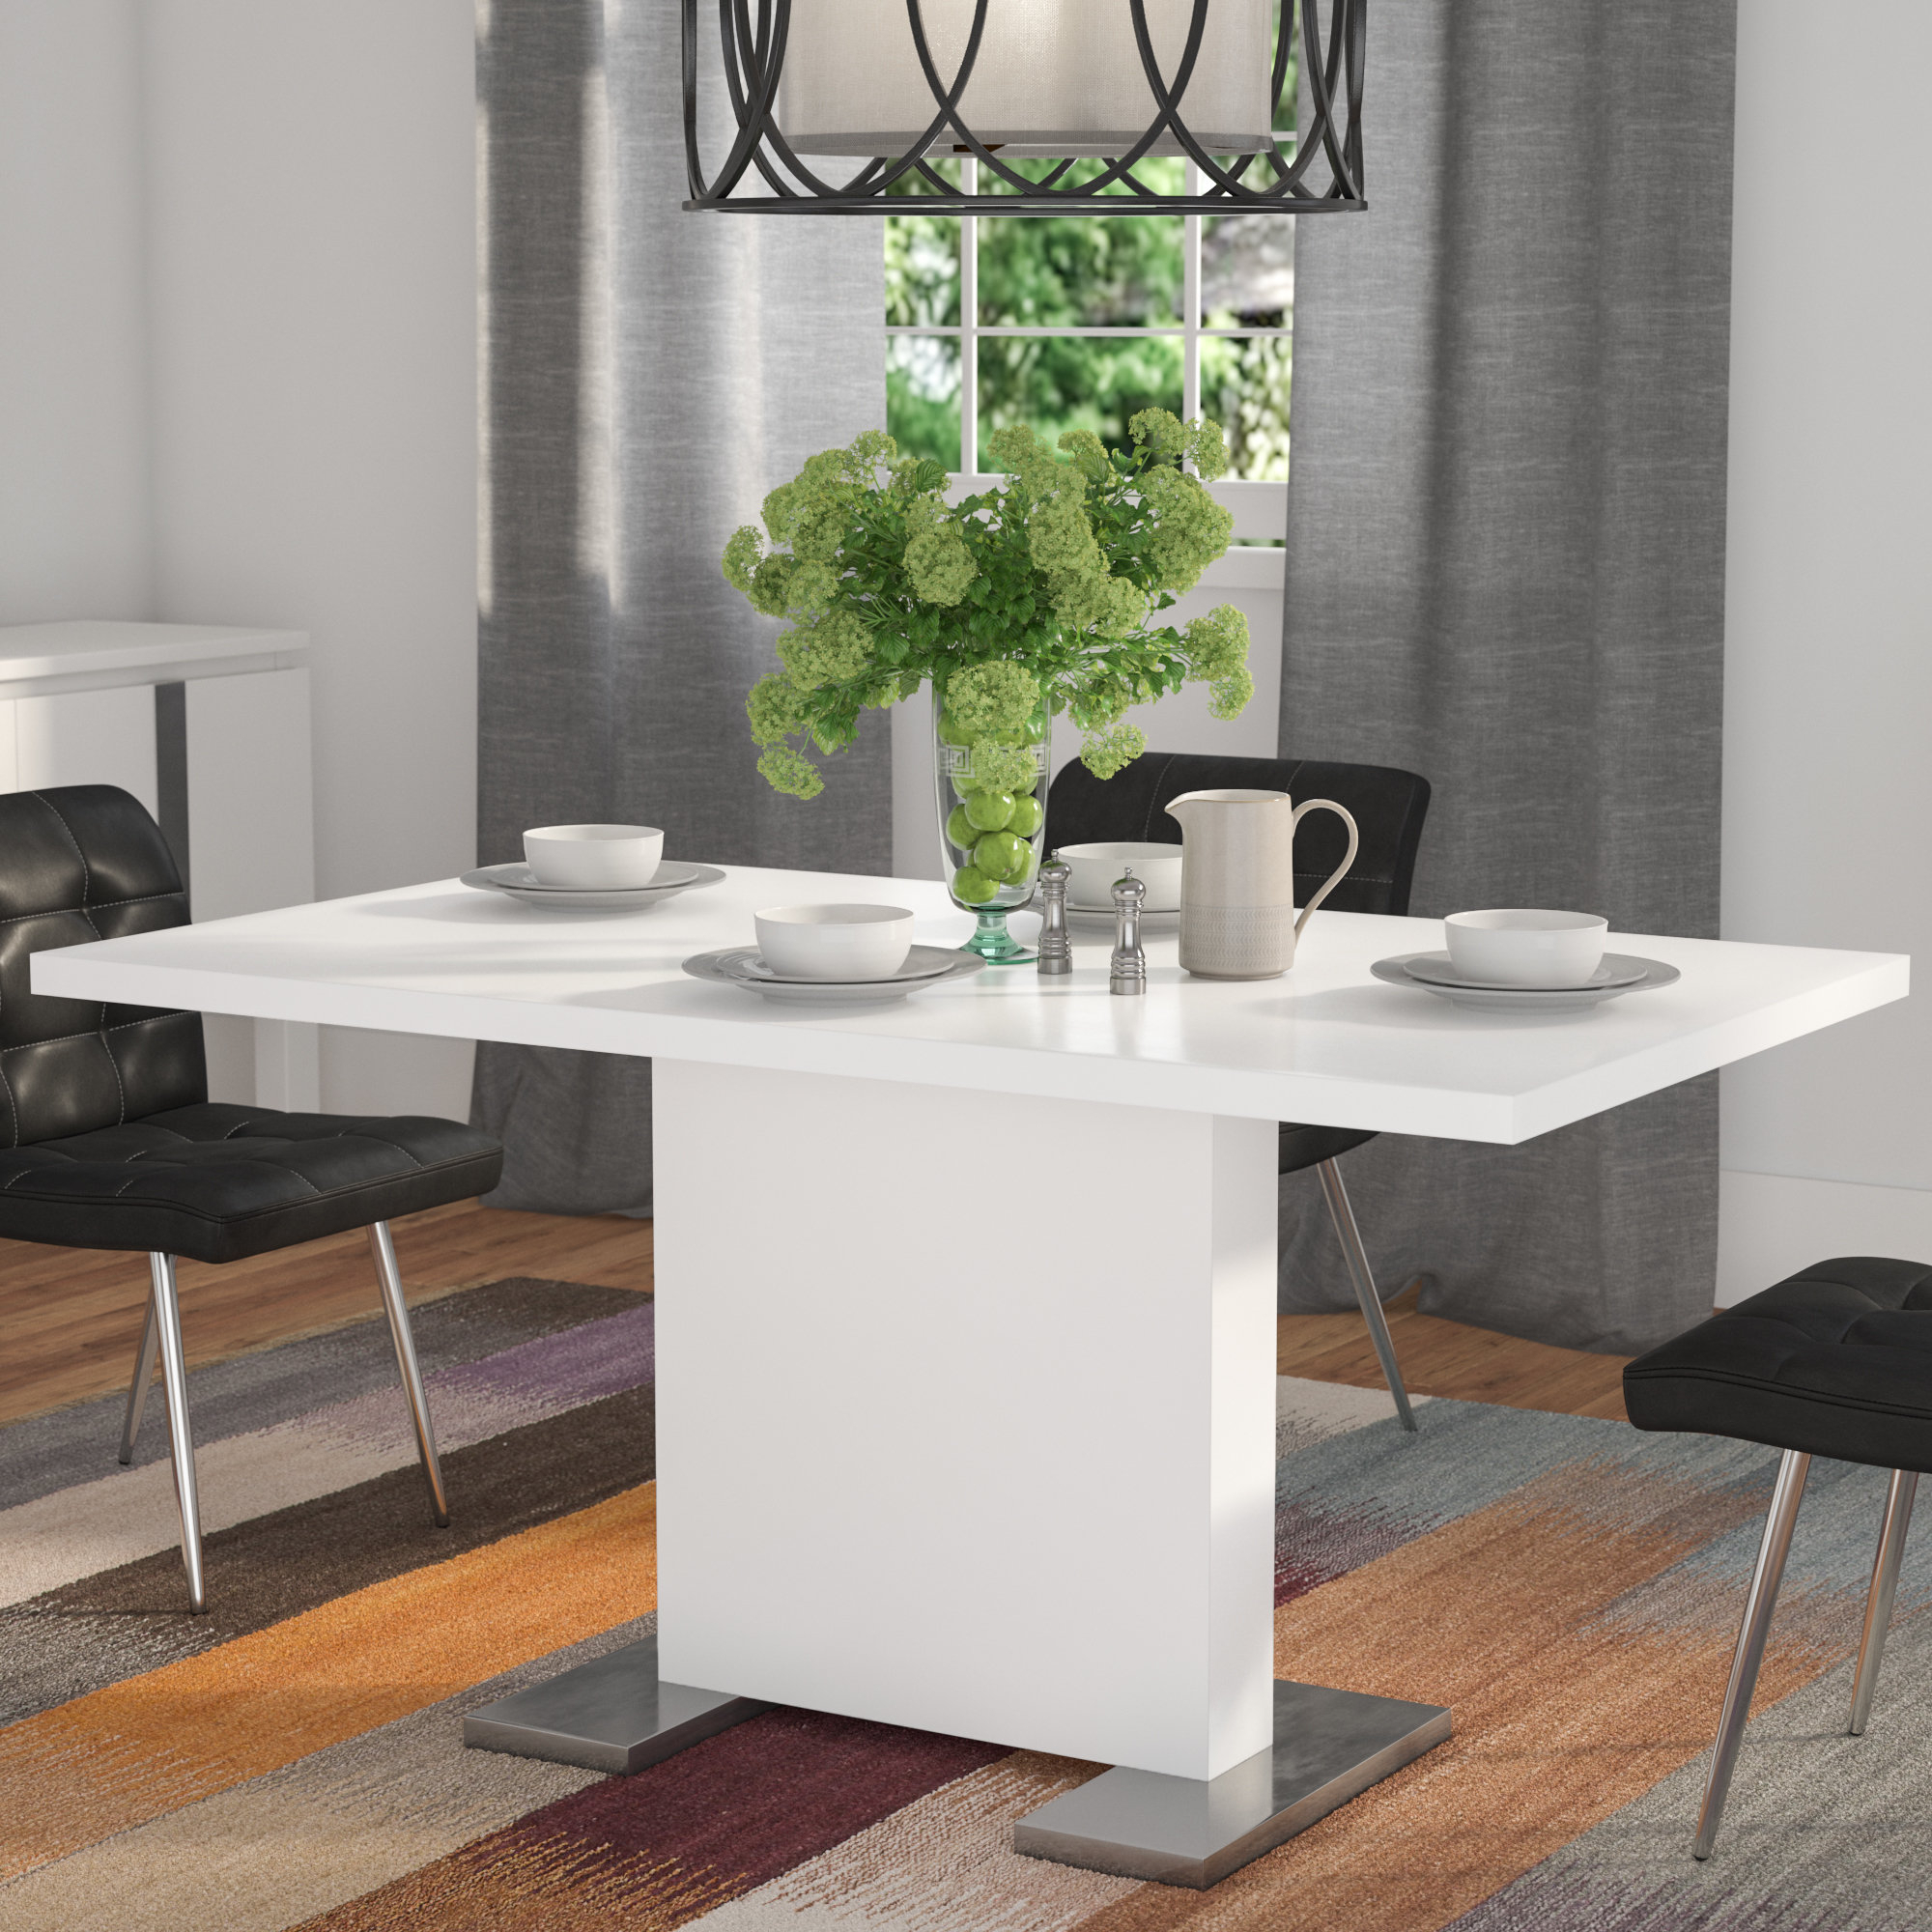 Moorehead 3 Piece Counter Height Dining Sets Regarding Trendy Latitude Run Moorhead Dining Table & Reviews (View 11 of 25)